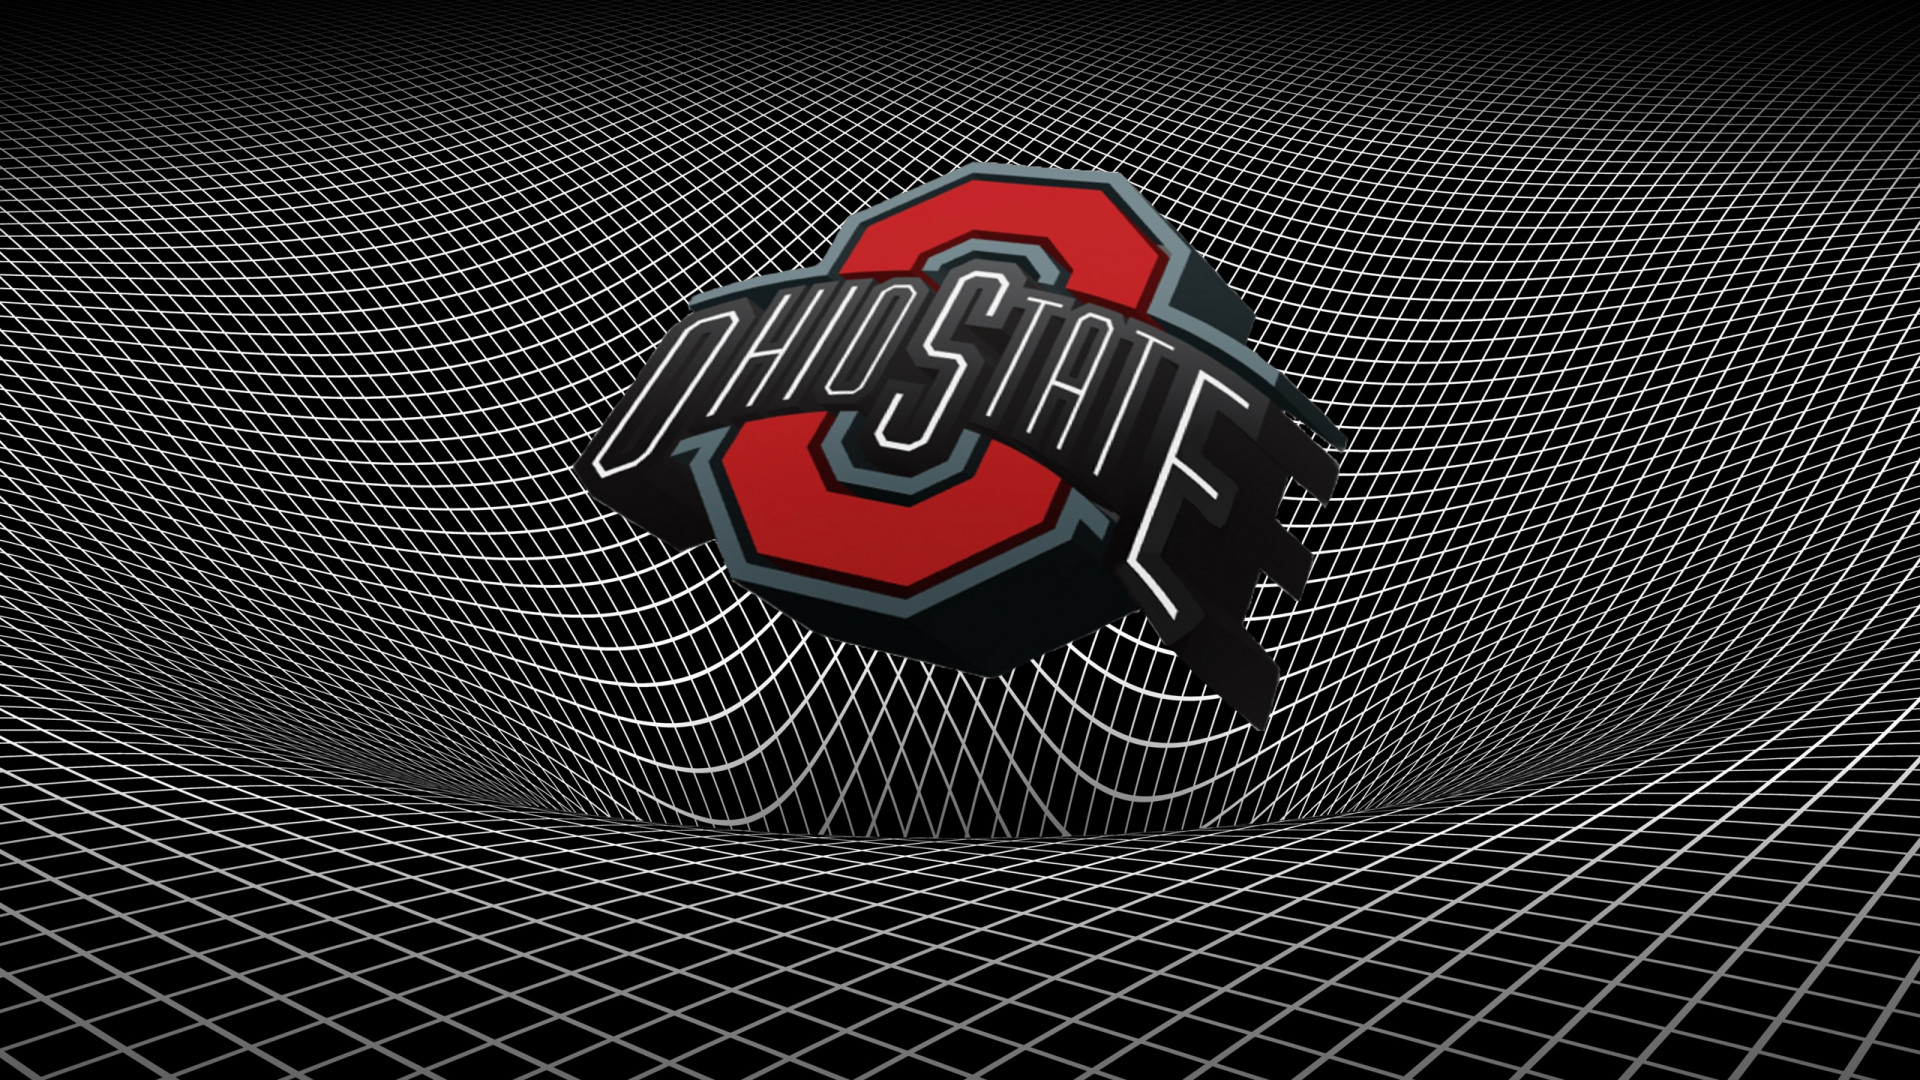 HD ohio state football wallpaper Wallpaper Database 1920x1080